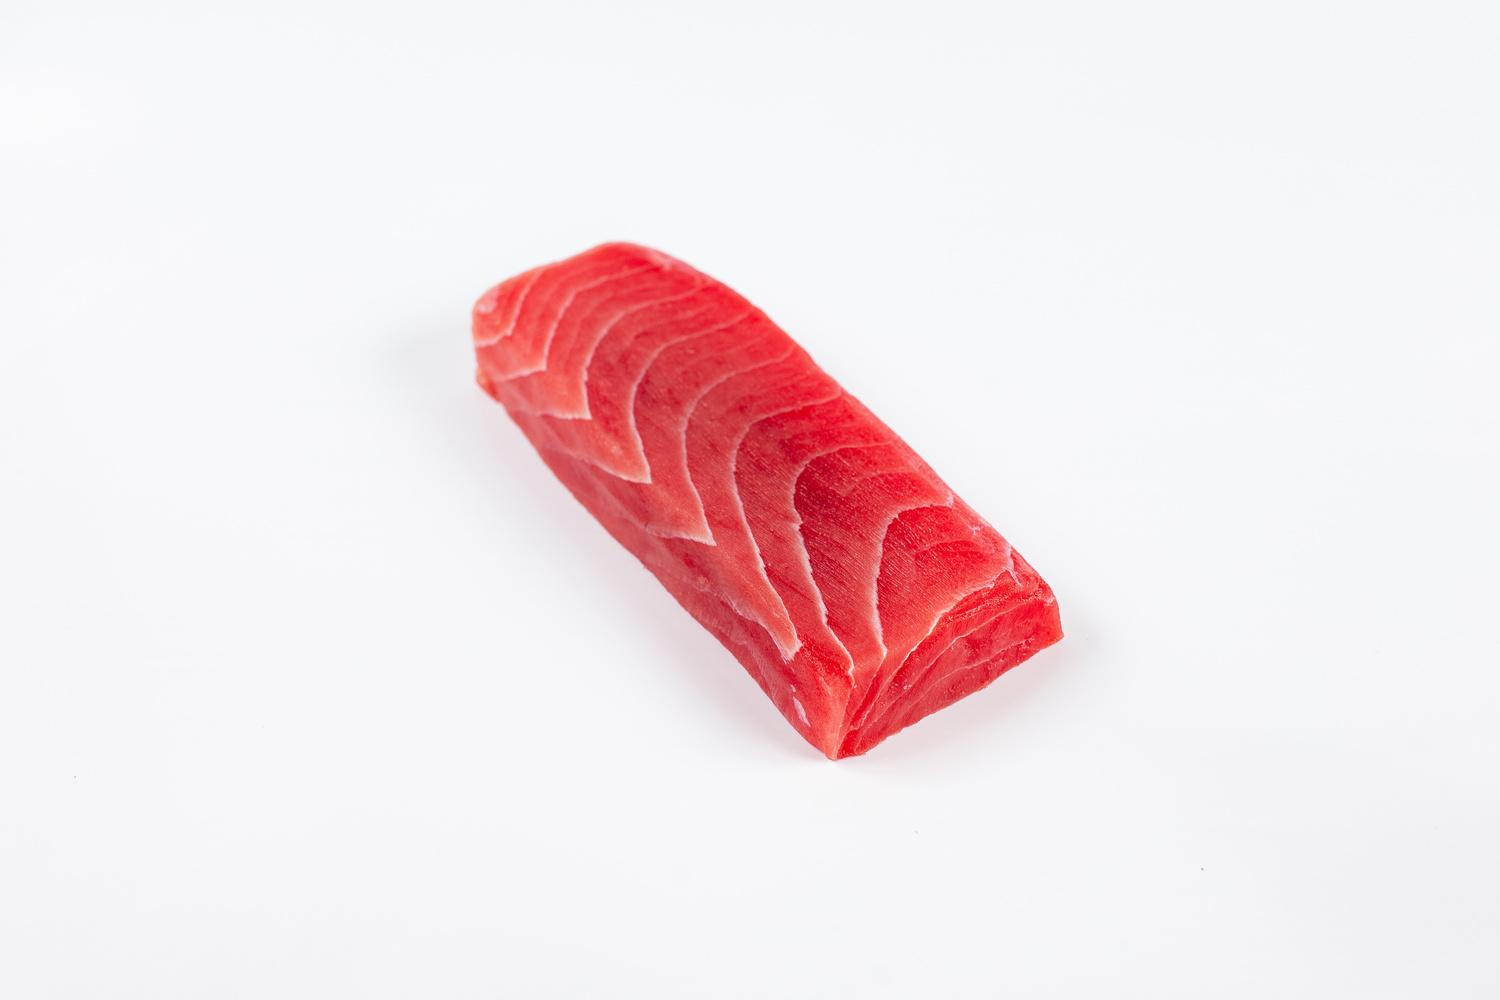 Image of Portico Imperial Ahi Tuna